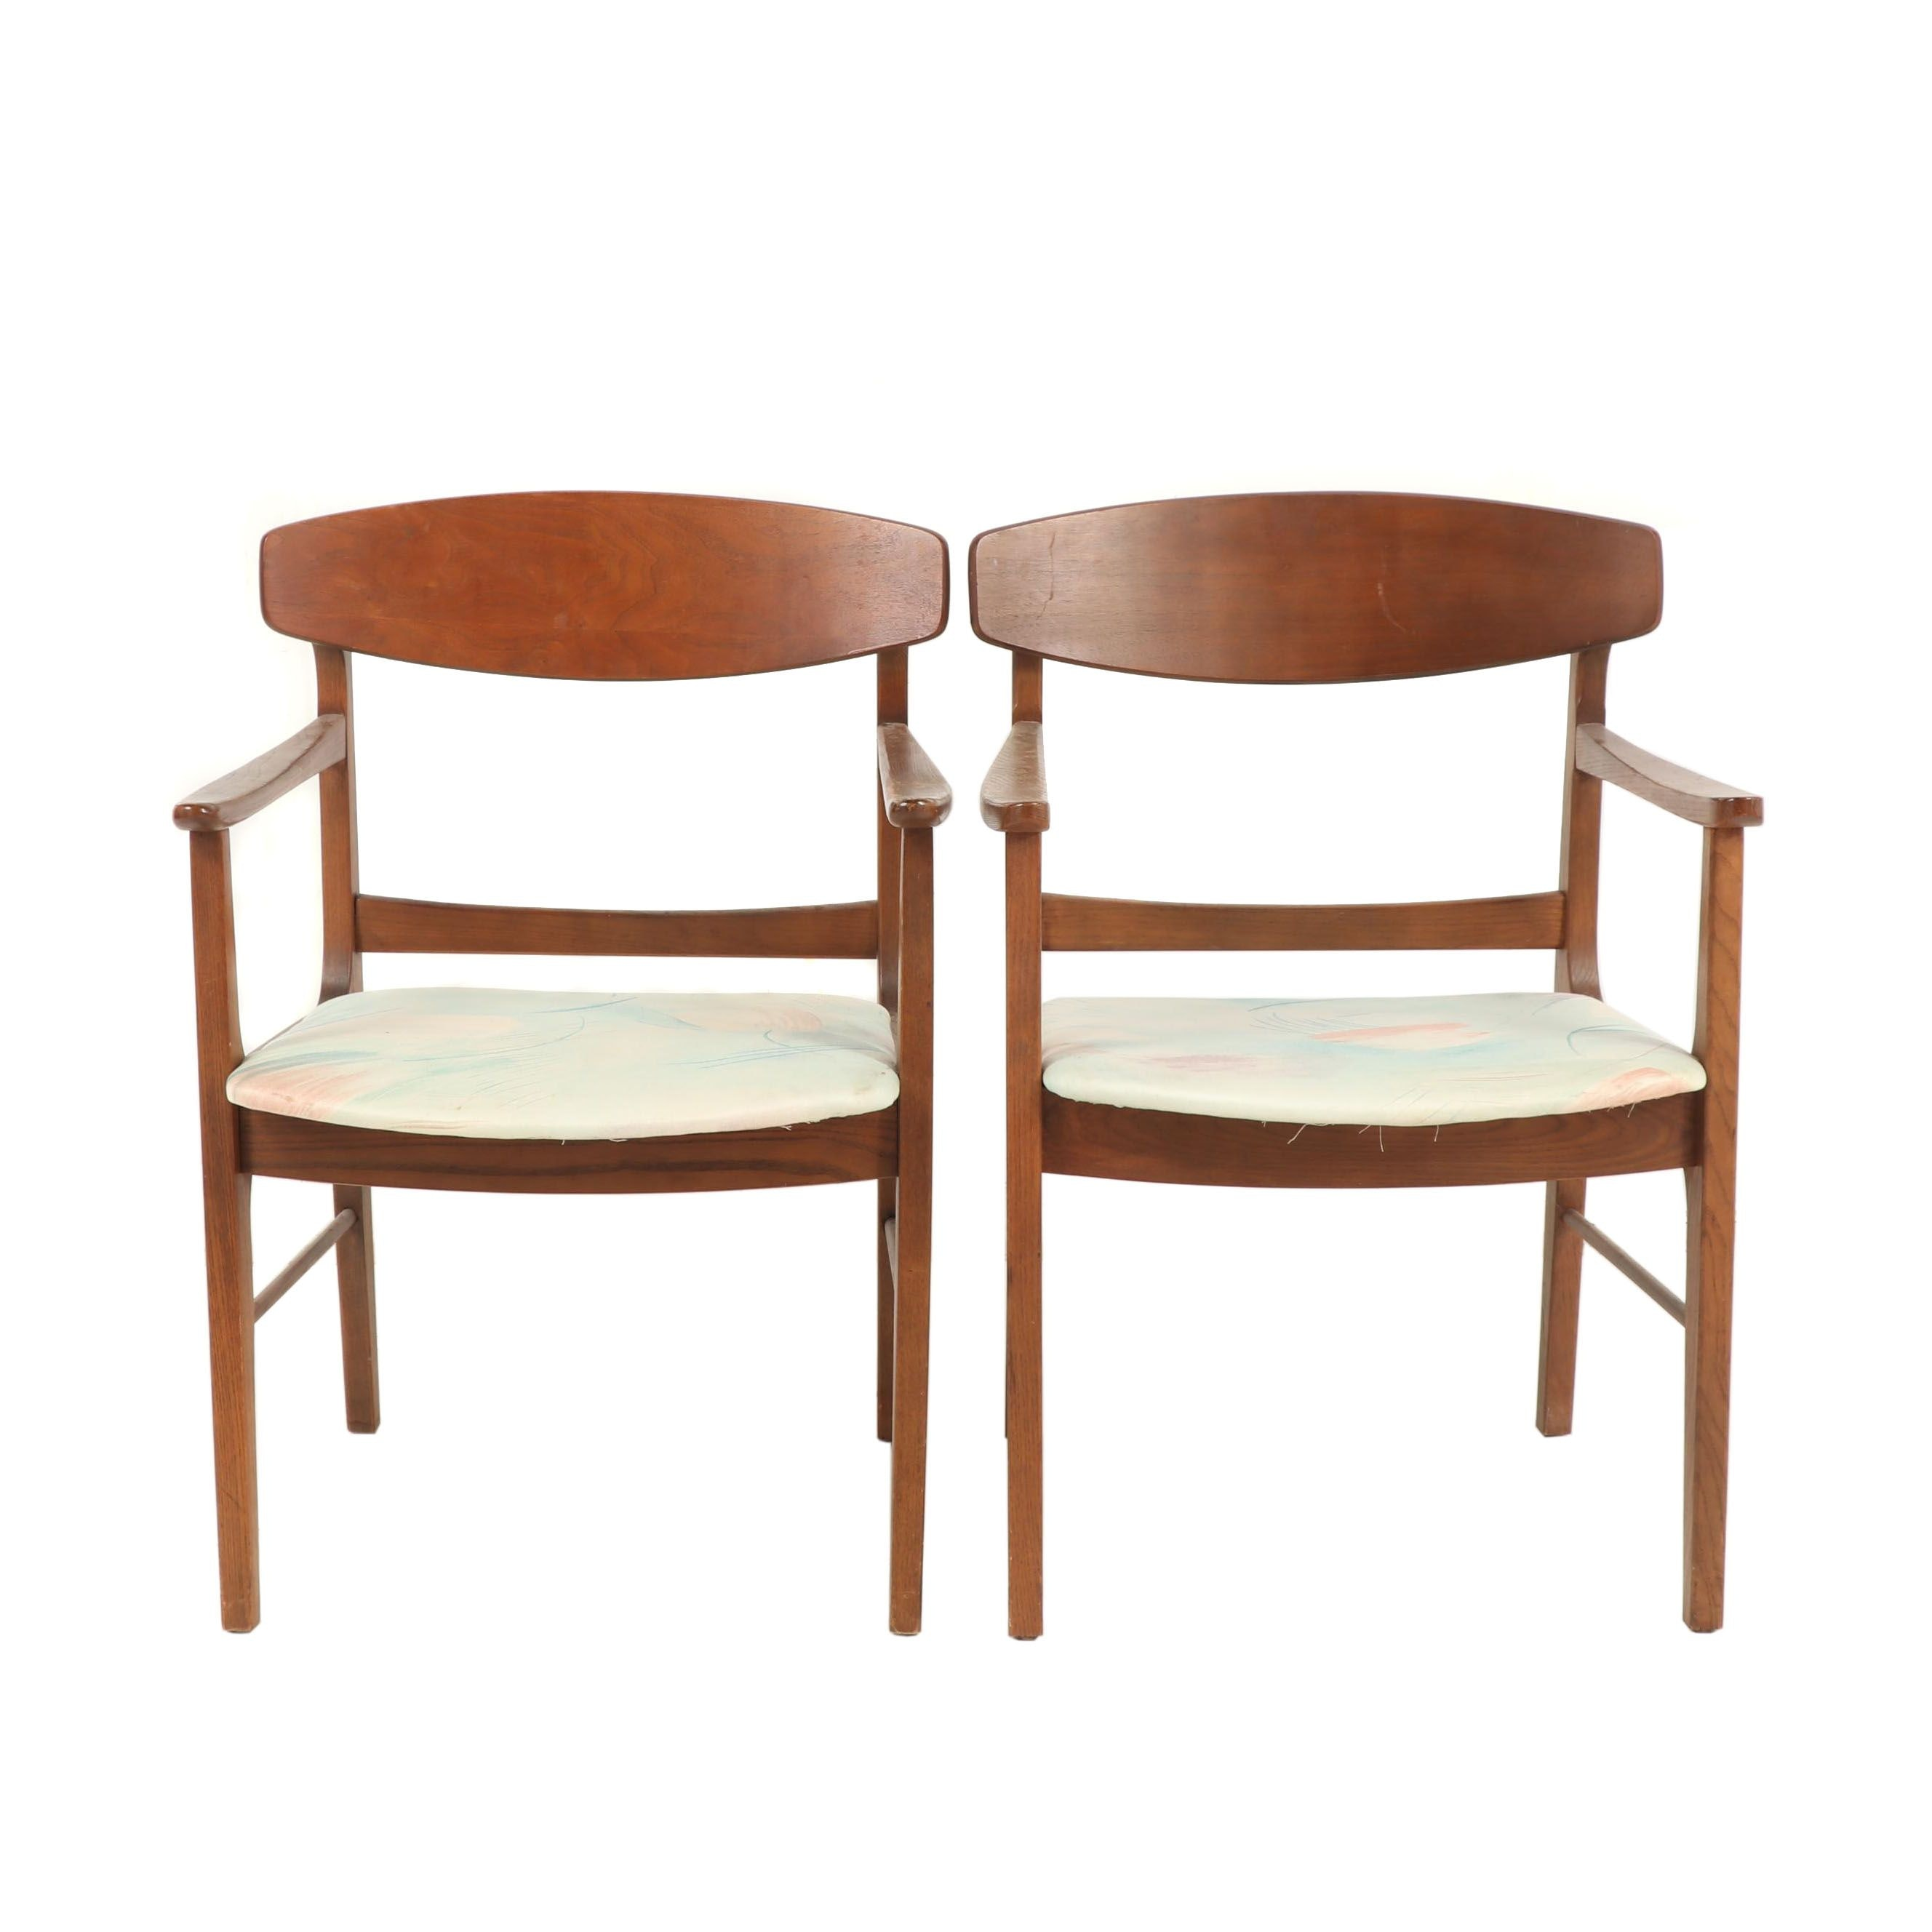 A Pair of Wooden Arm Chairs with Upholstered Seats